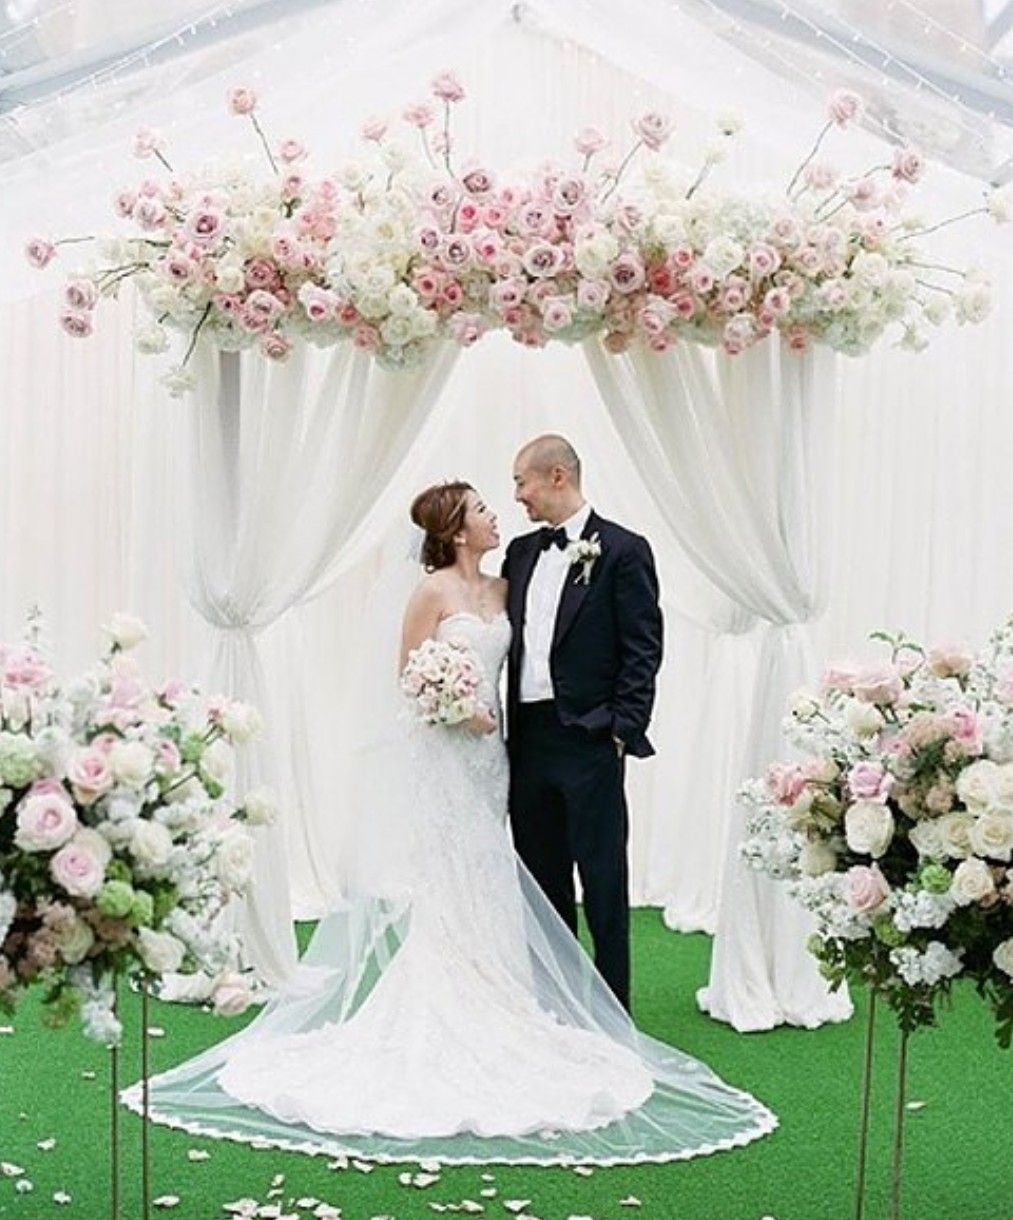 The Edgewater Reviews Ratings Wedding Ceremony: Pin By Florists' Review On Ceremony Backdrop